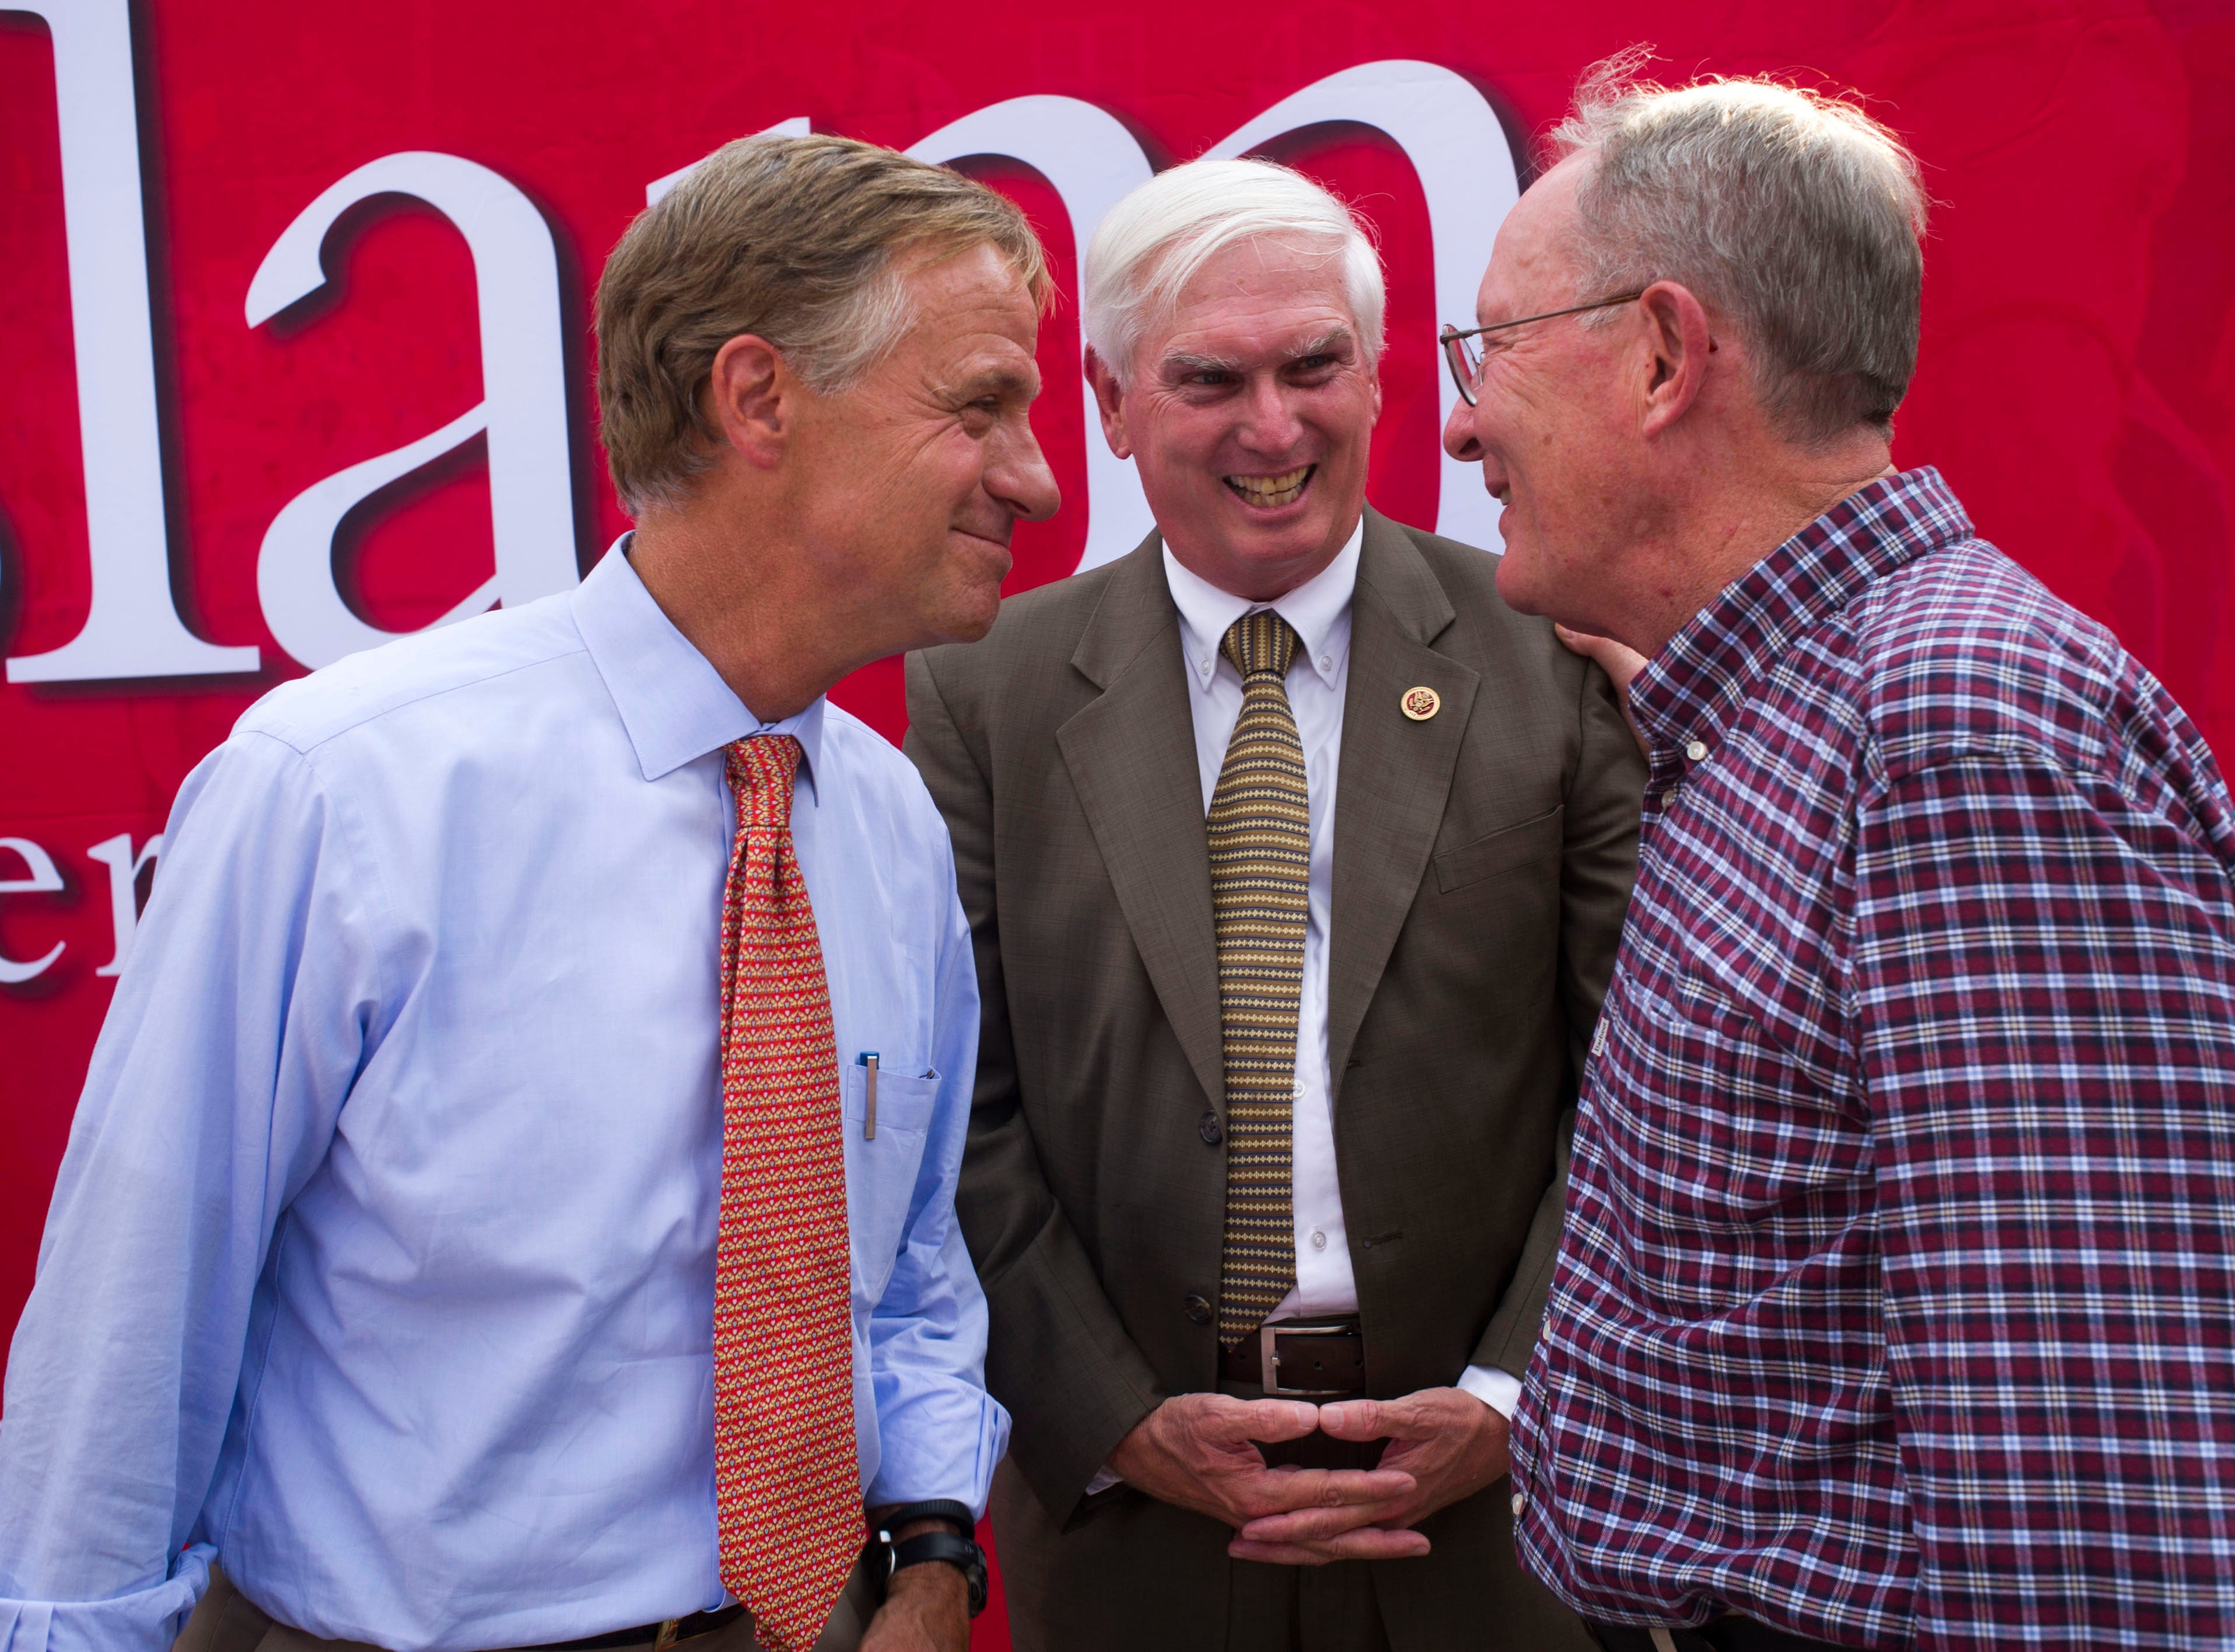 Gov. Bill Haslam, left, U.S. Rep. John J. Duncan Jr., and U.S. Sen. Lamar Alexander share the stage during a get out the vote rally Wednesday, Aug. 6, 2014, at Cherokee Mills. Alexander is being challenged by state Rep. Joe Carr and Memphis radio station owner George Flinn for his senate seat.